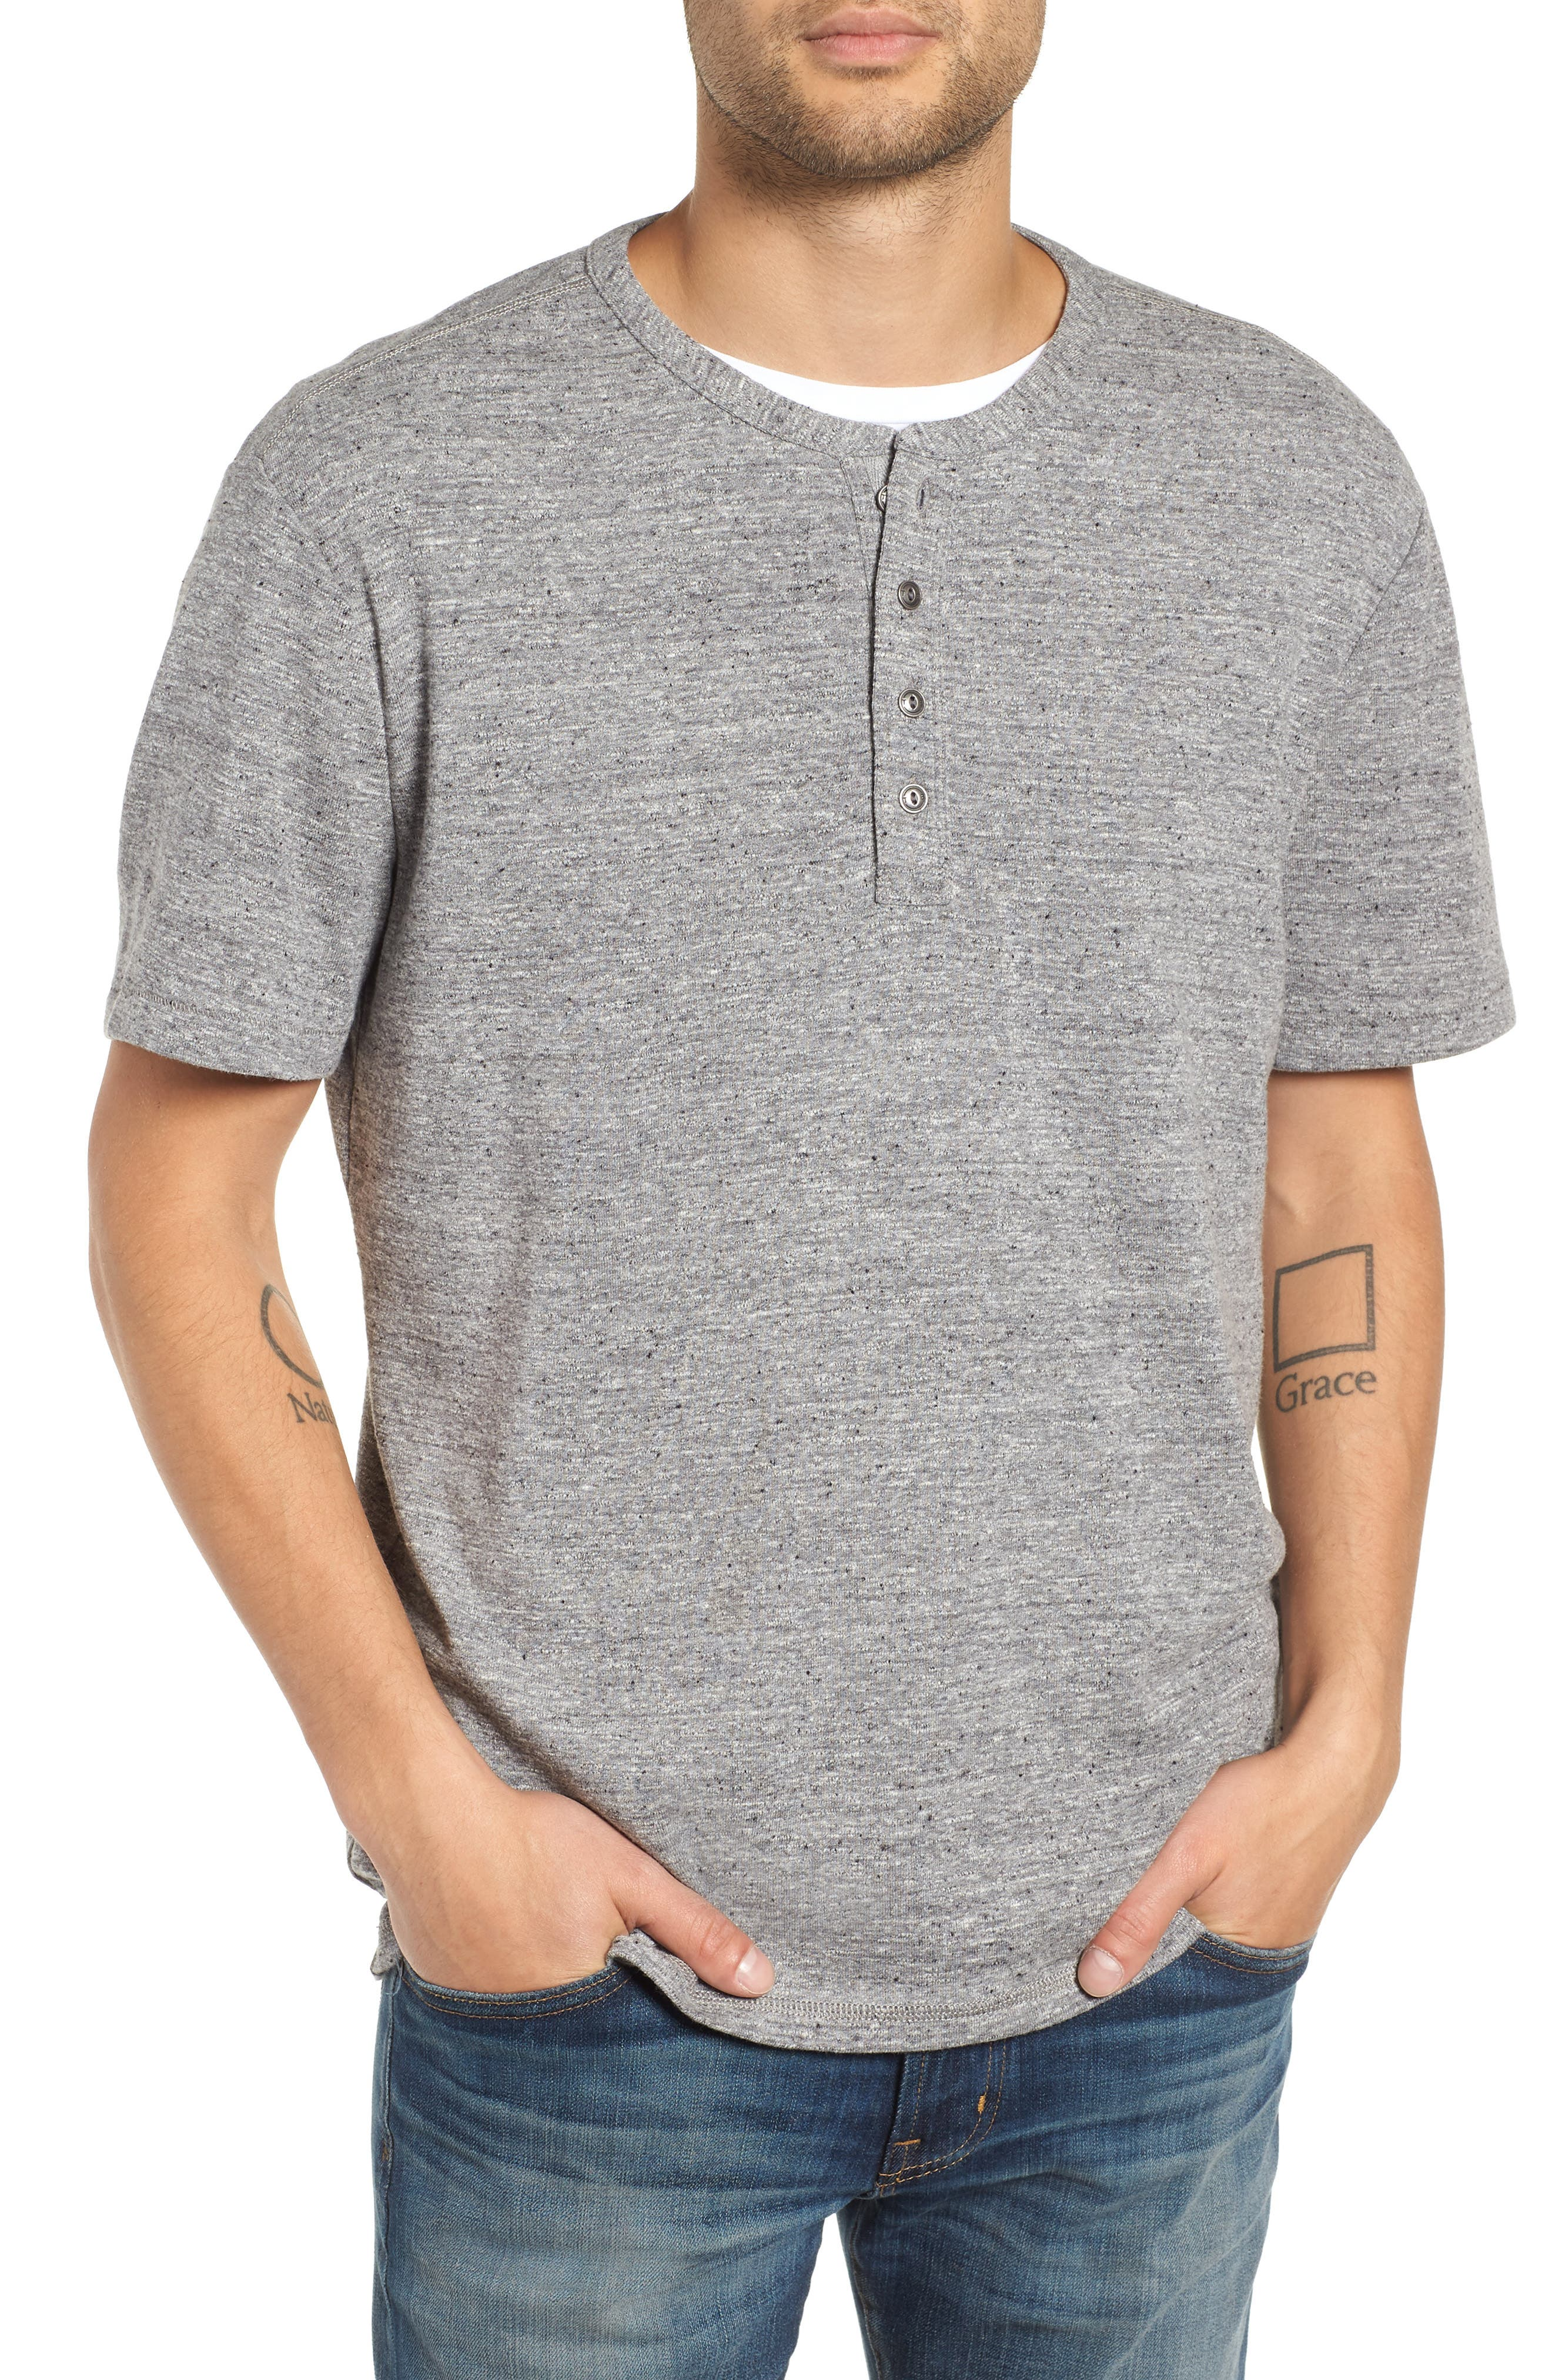 Nep Henley Shirt,                         Main,                         color, 021